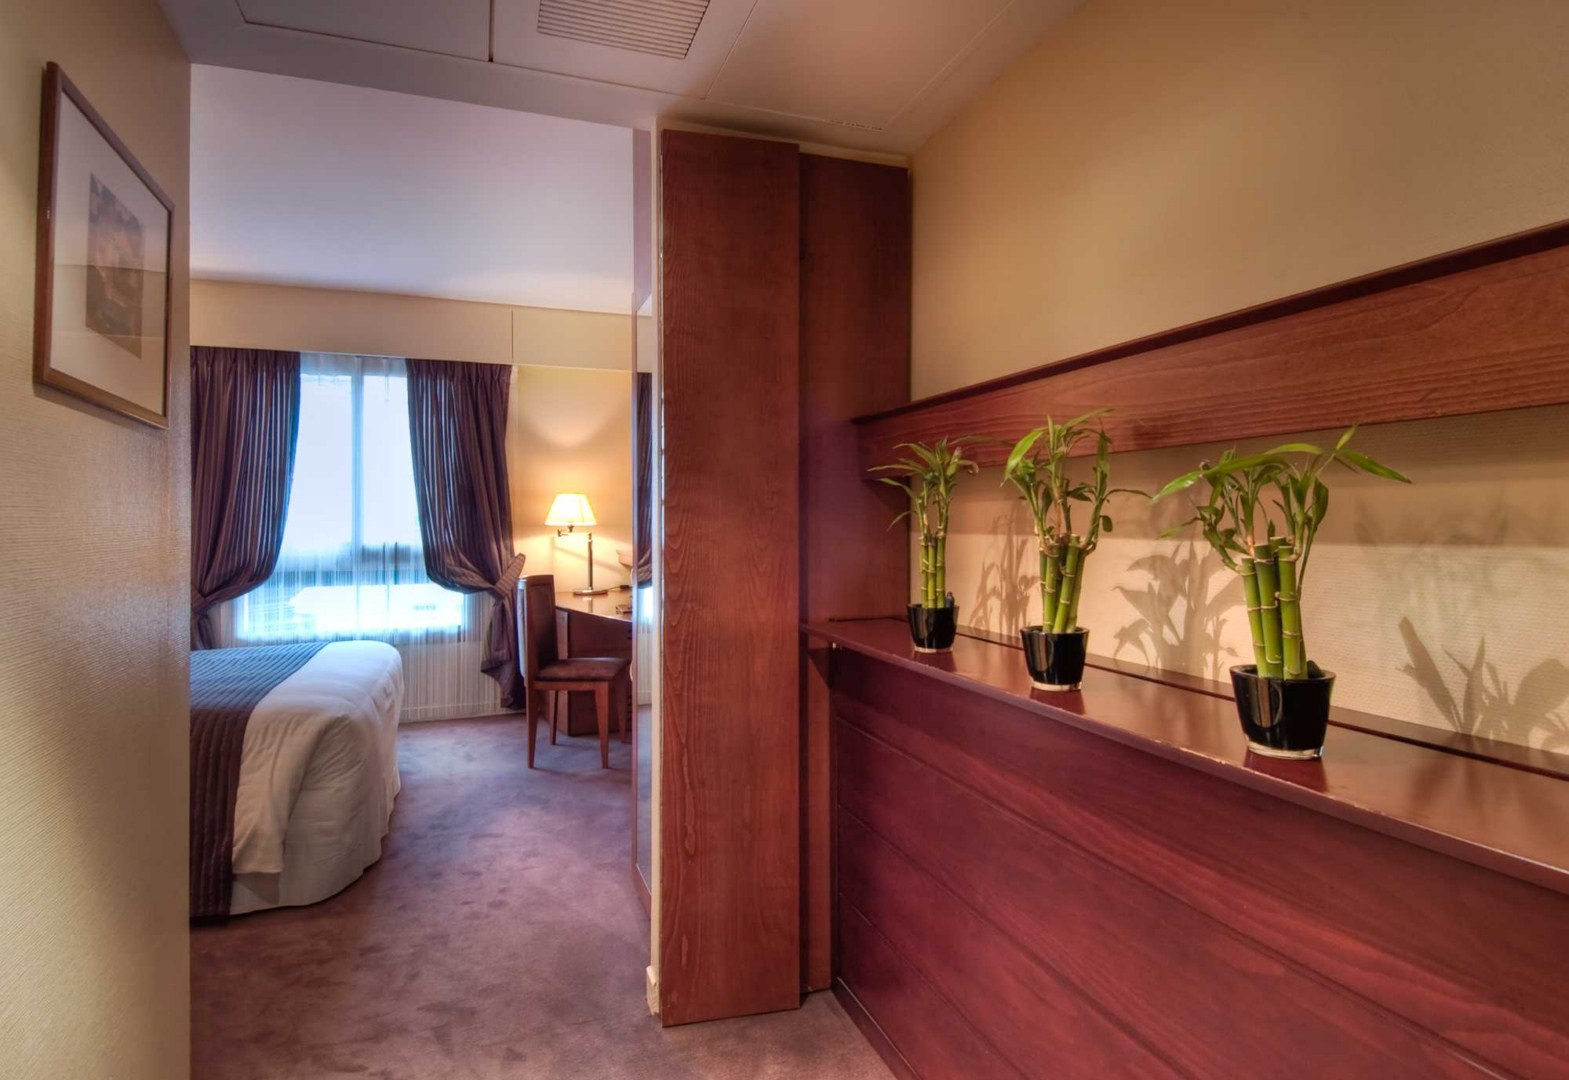 Hotel Ampere - Superieure